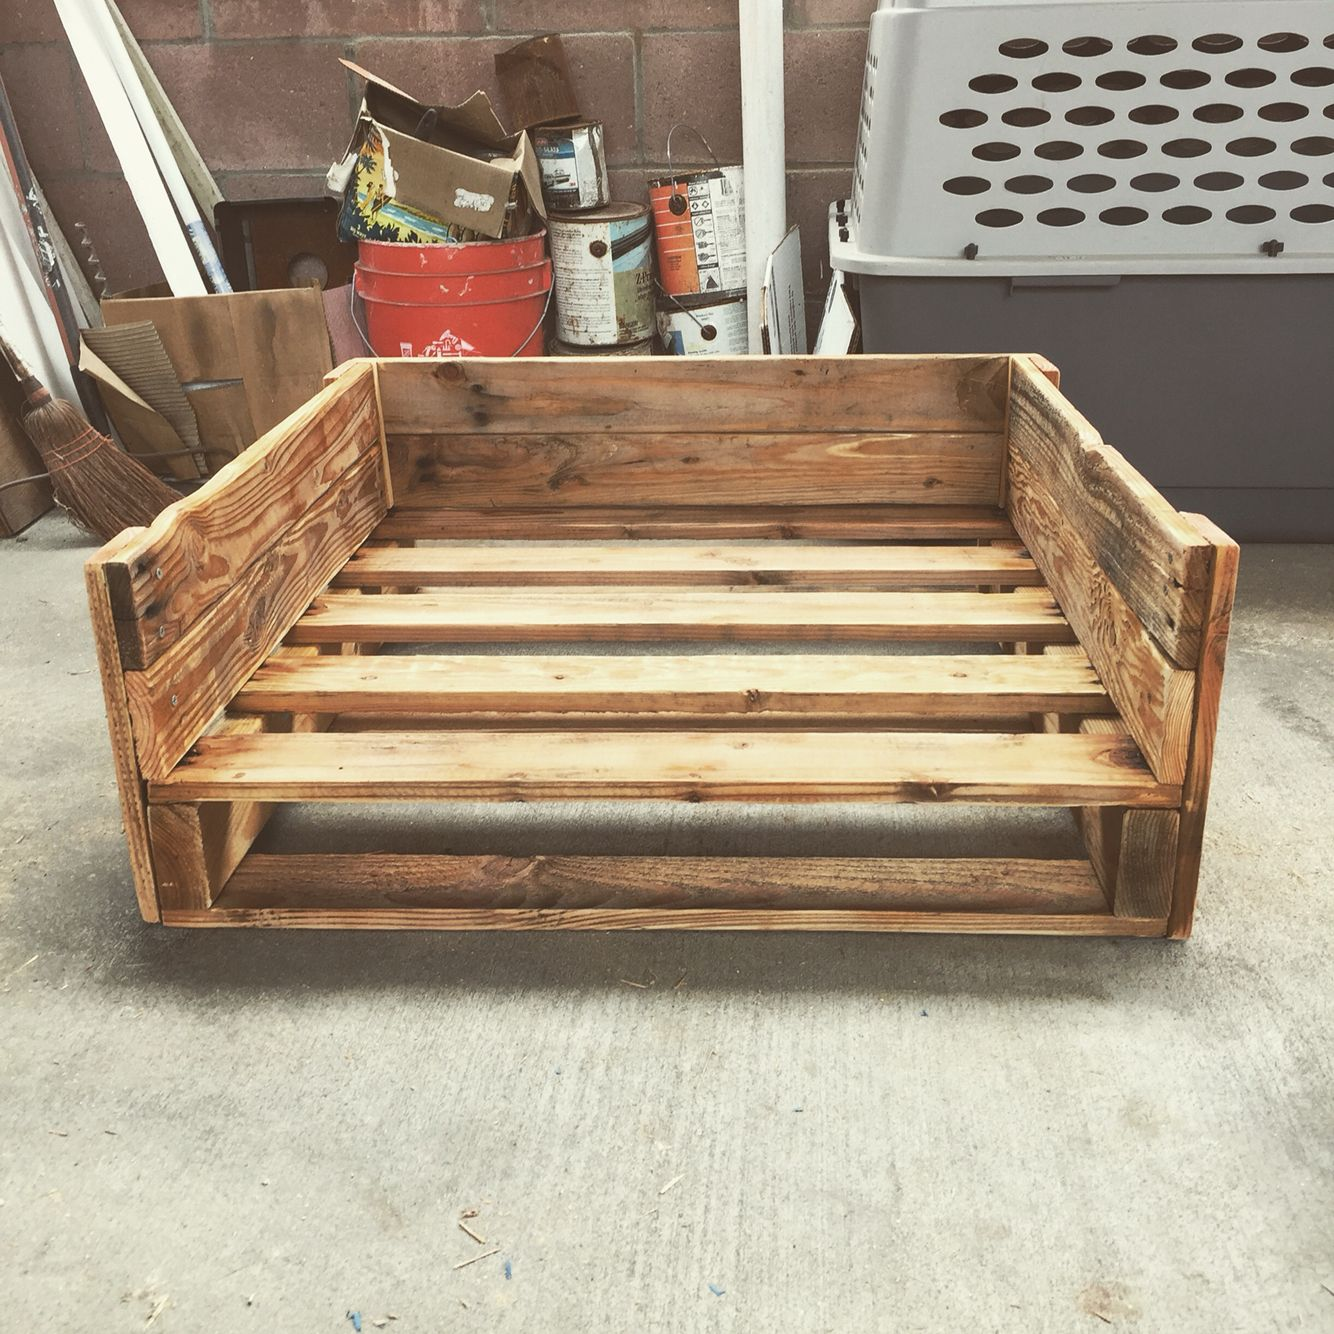 Dog bed made from a pallet in 2020 | Pallet dog beds, Wood dog bed, Pallett dog  bed